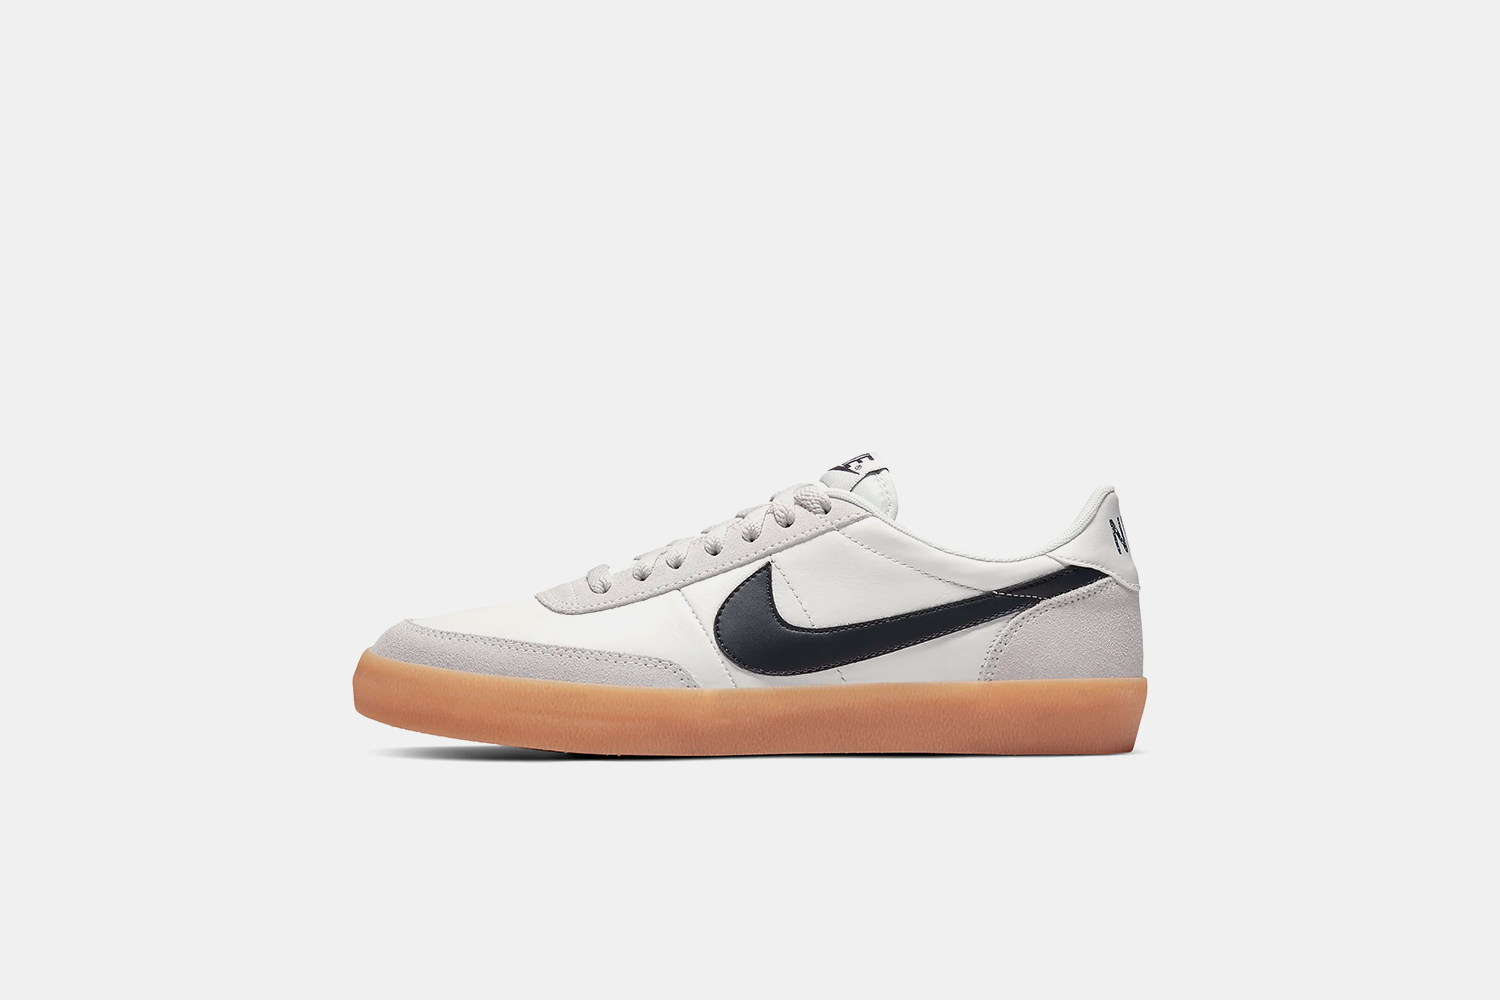 Deal Take 25 Off As Nike S Cyber Monday Sale Continues Insidehook